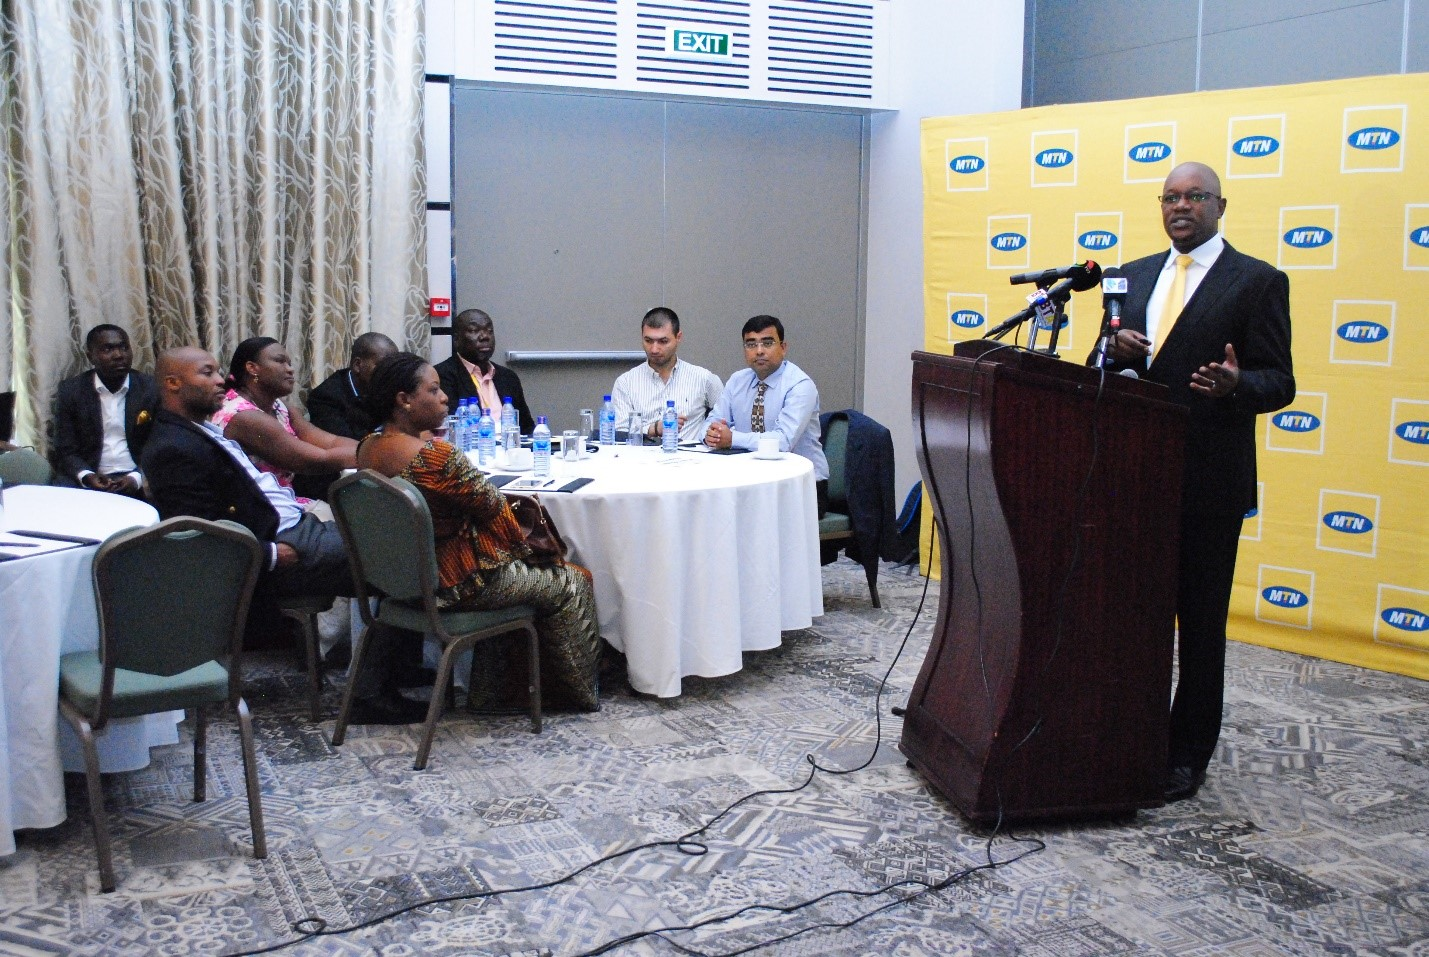 MTN CEO SERAME TAUKOBONG ADDRESSING THE MEDIA AT THE FORUM